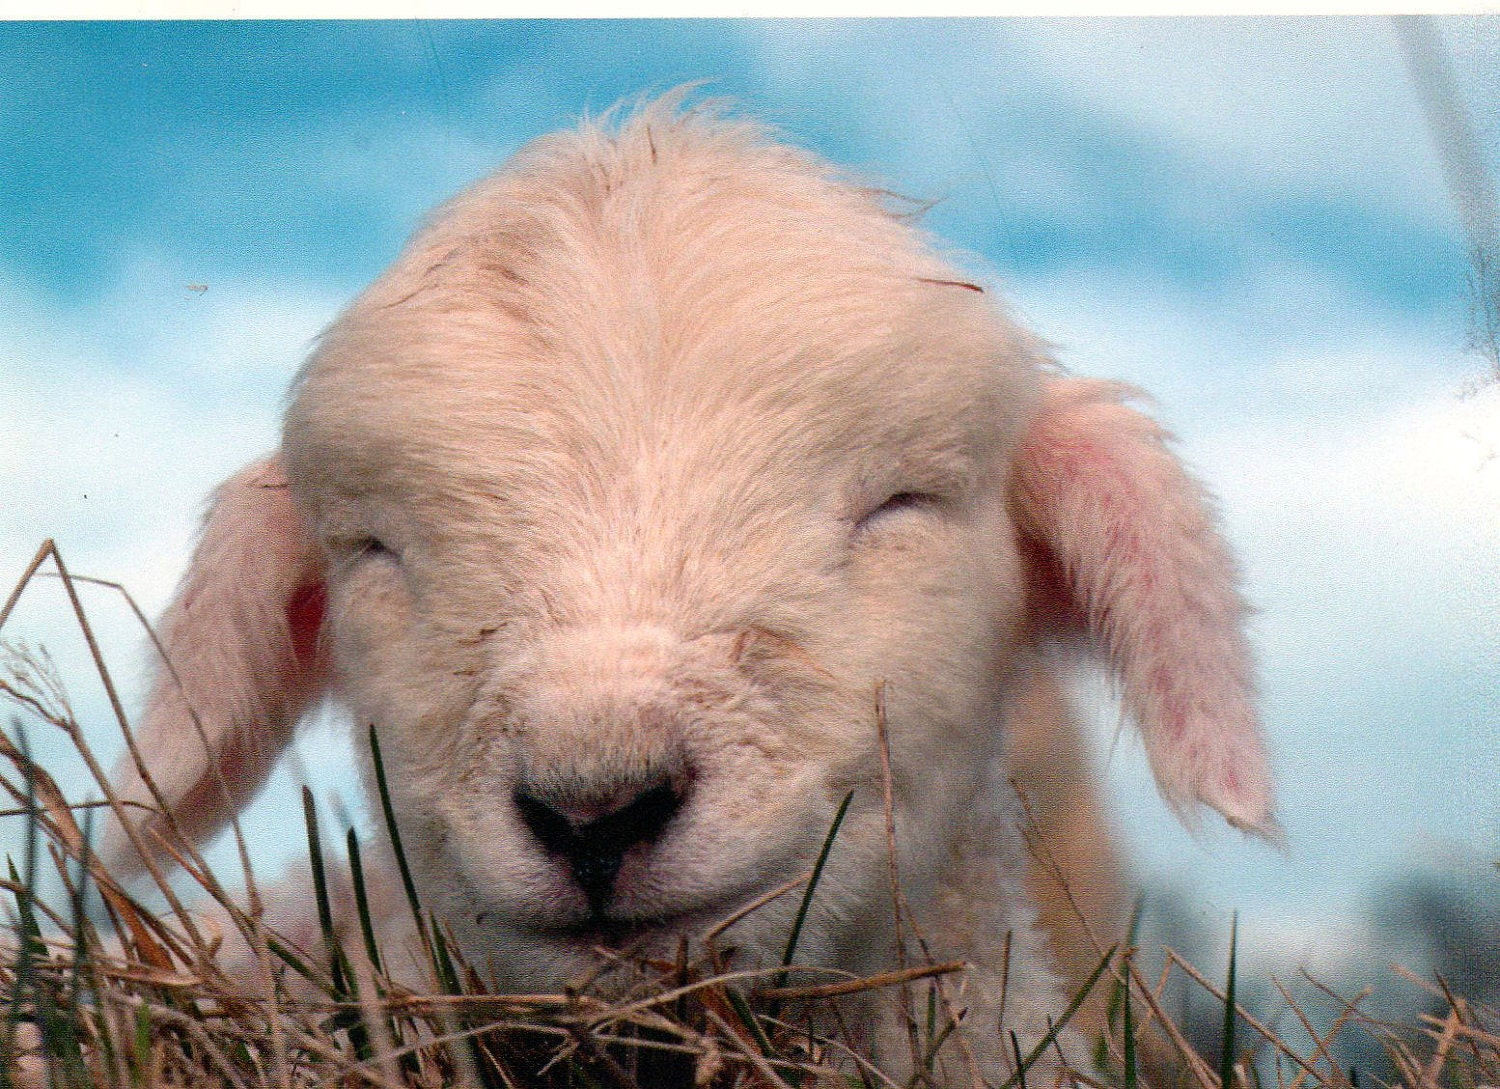 Lamb, Sheep, Great nursery decor or baby shower gift...SMILE, New born lamb, color photograph taken in New Zealand